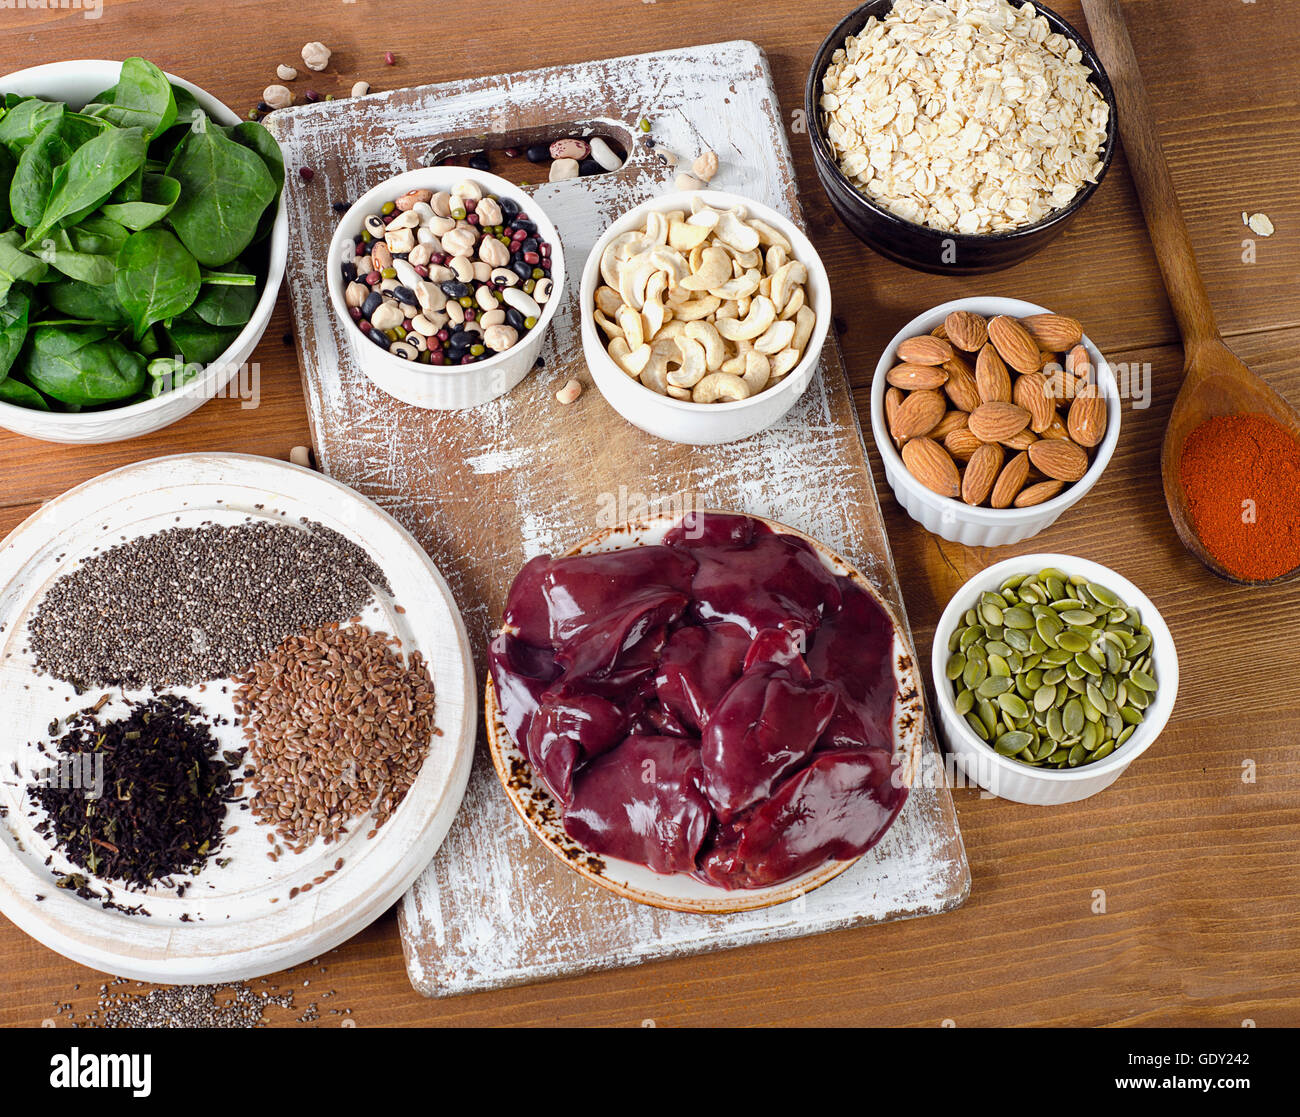 Foods high in Manganese. Healthy diet eating. Top view - Stock Image